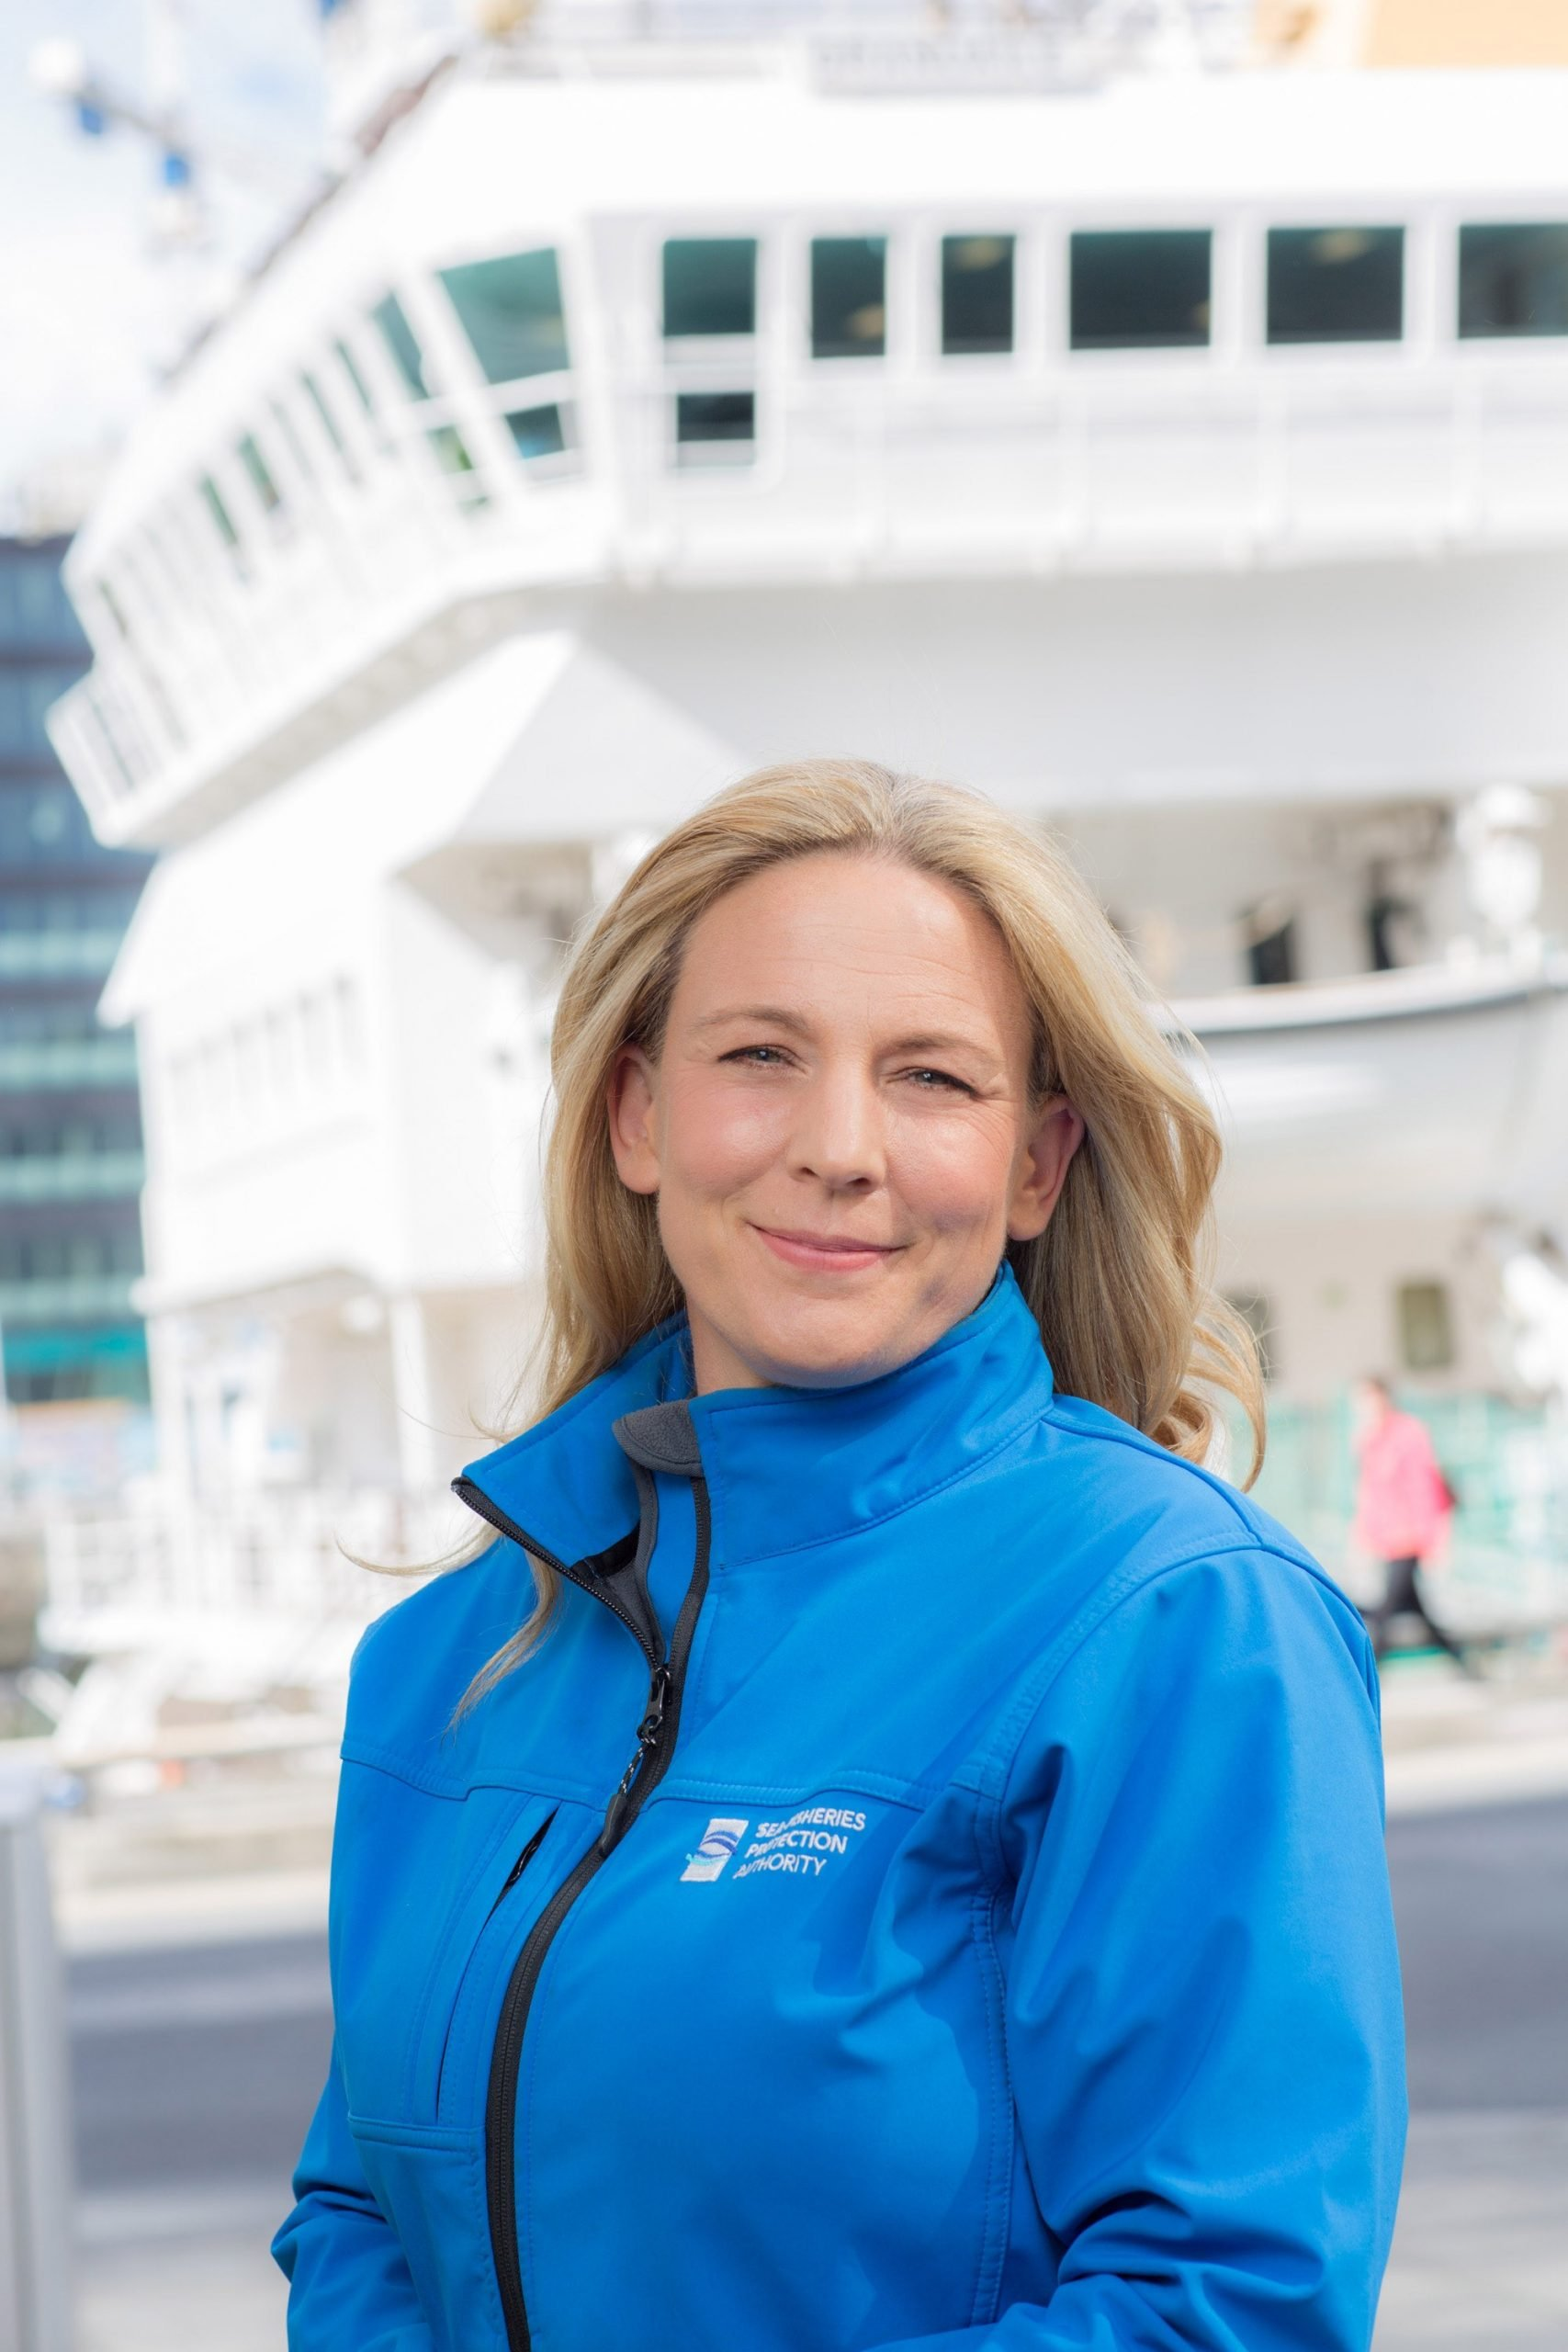 The Administrative Board of the European Fisheries Control Agency (EFCA) has appointed the SFPA's Dr Susan Steele as Executive Director